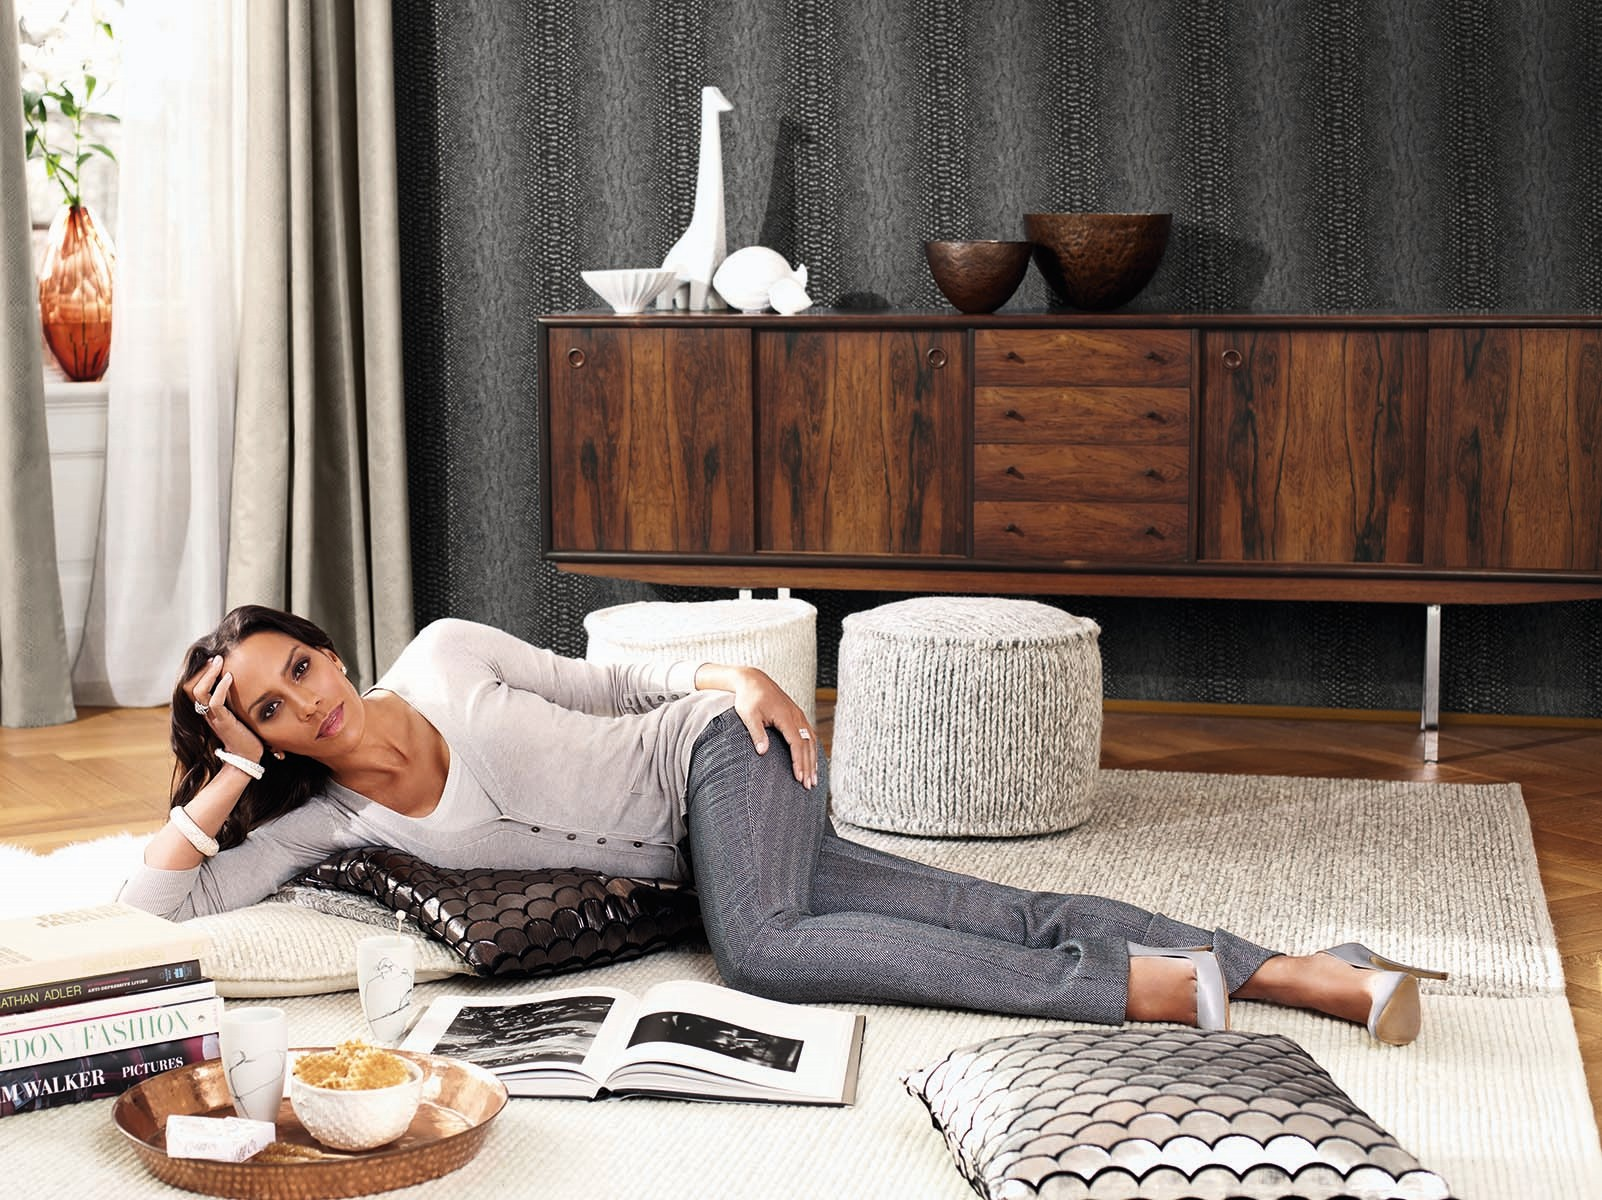 bb home passion carpets › Reinkemeier Rietberg  trade